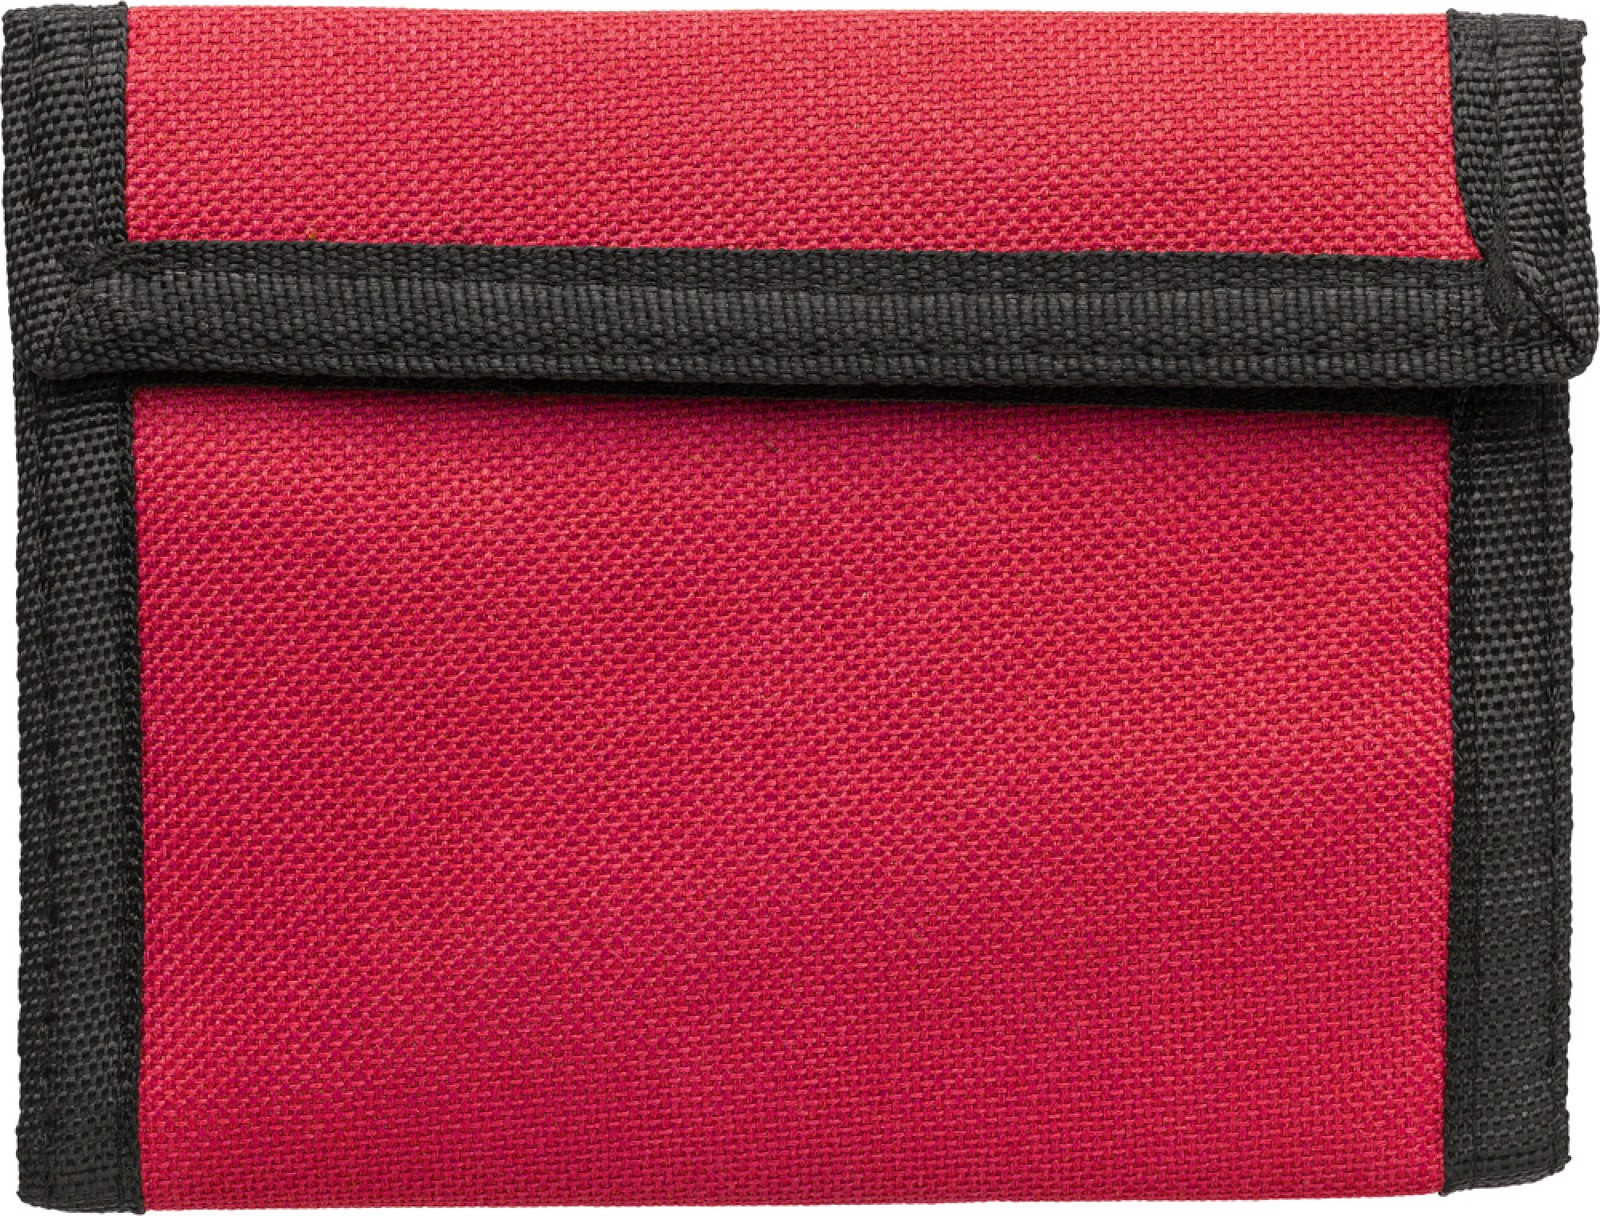 Polyester (190T + 600D) wallet - Red